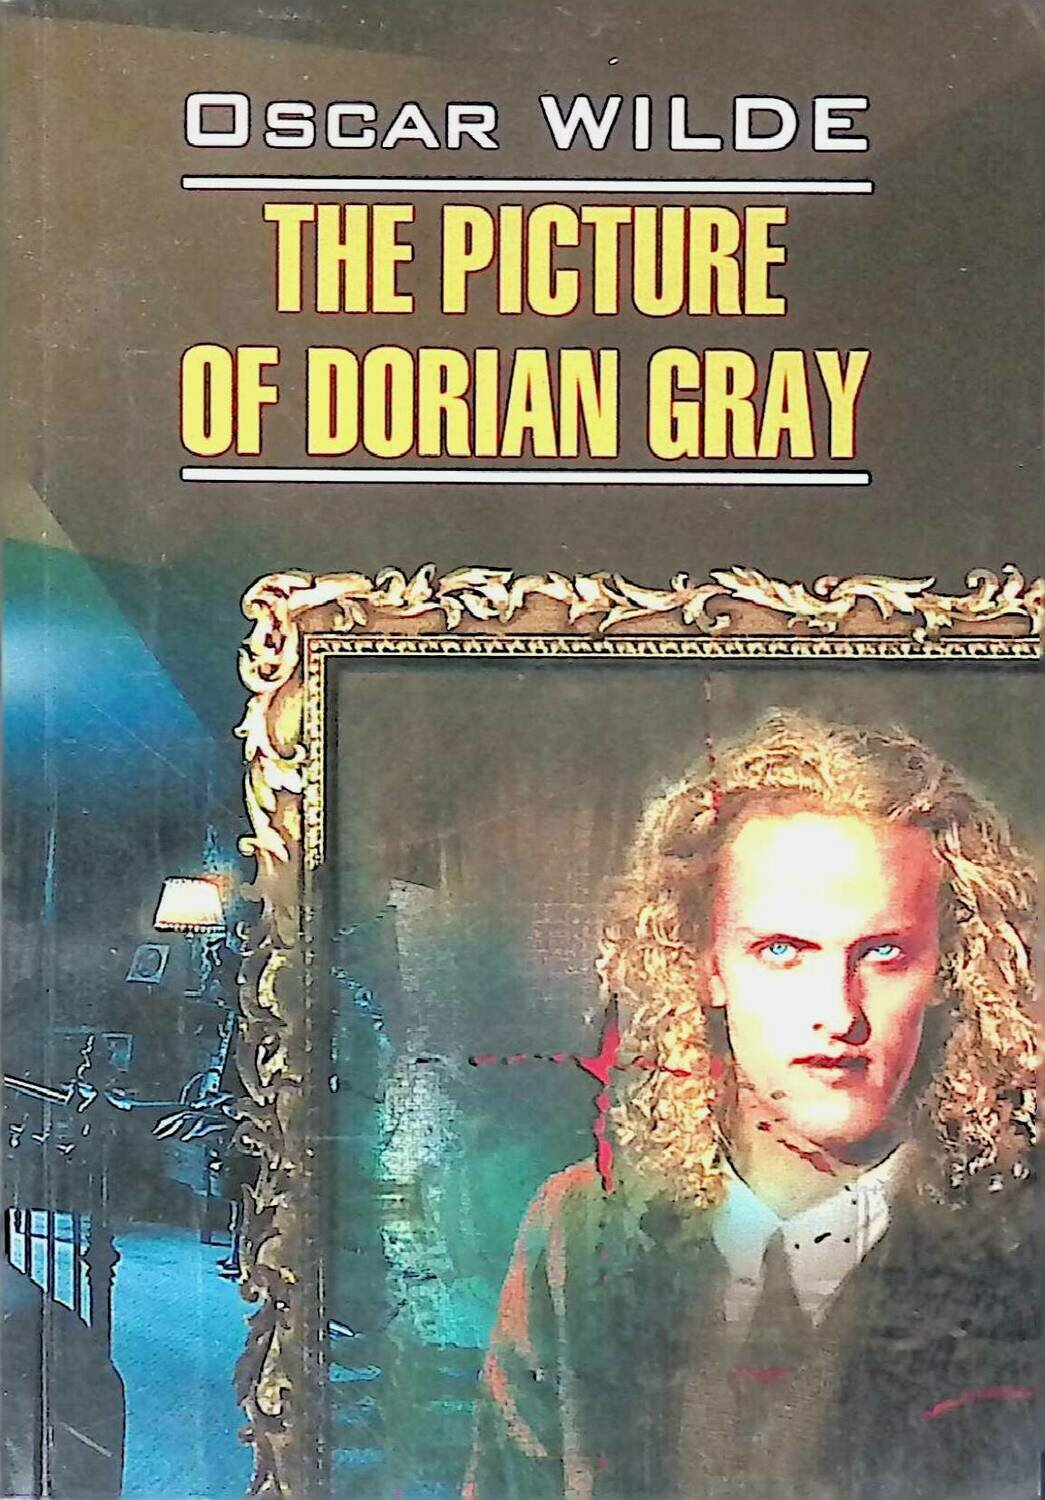 The Picture of Dorian Gray; Oscar Wilde